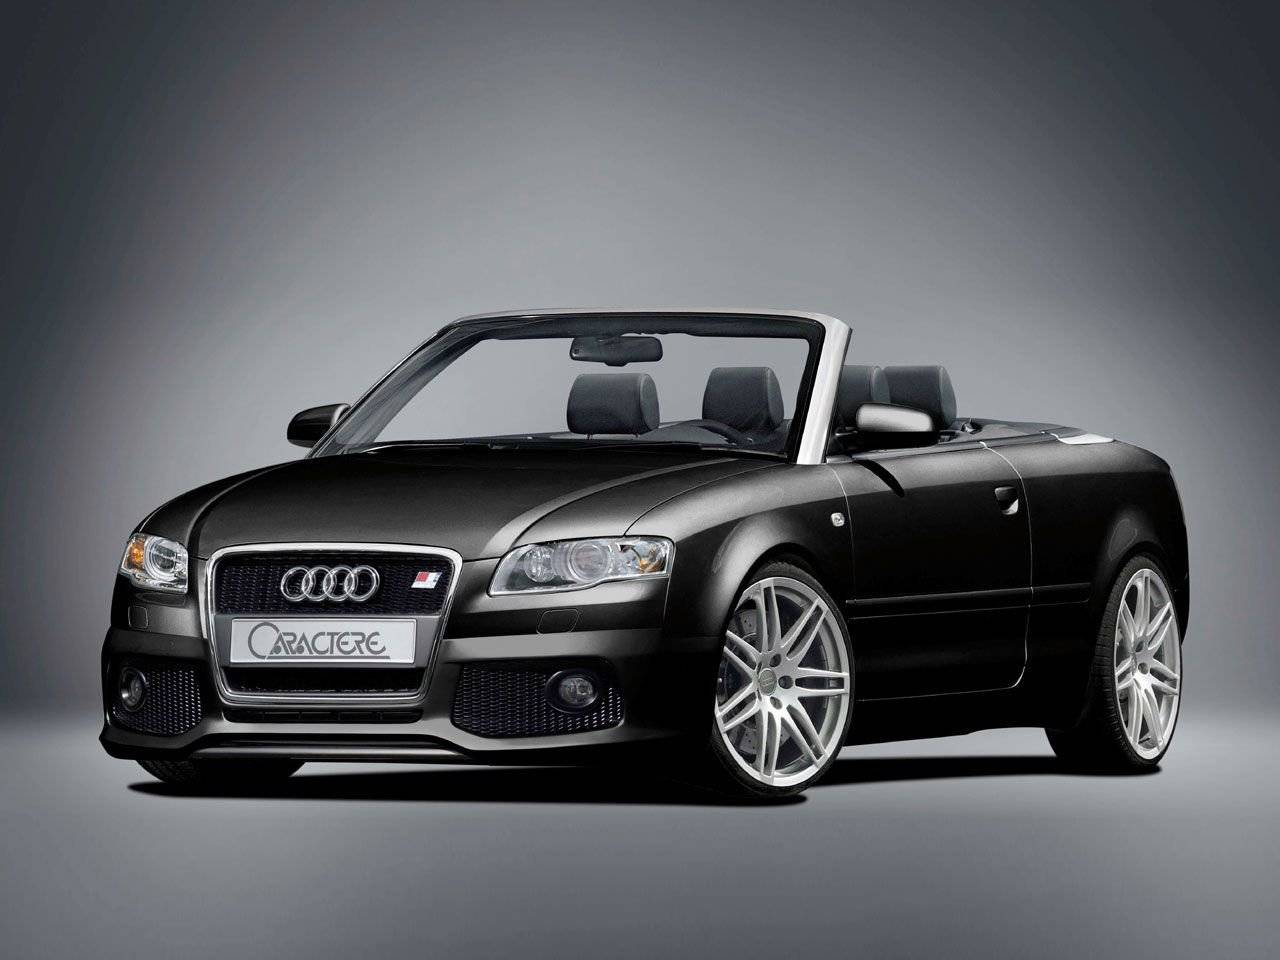 rs4 look voor audi a4 cabriolet tuning styling. Black Bedroom Furniture Sets. Home Design Ideas